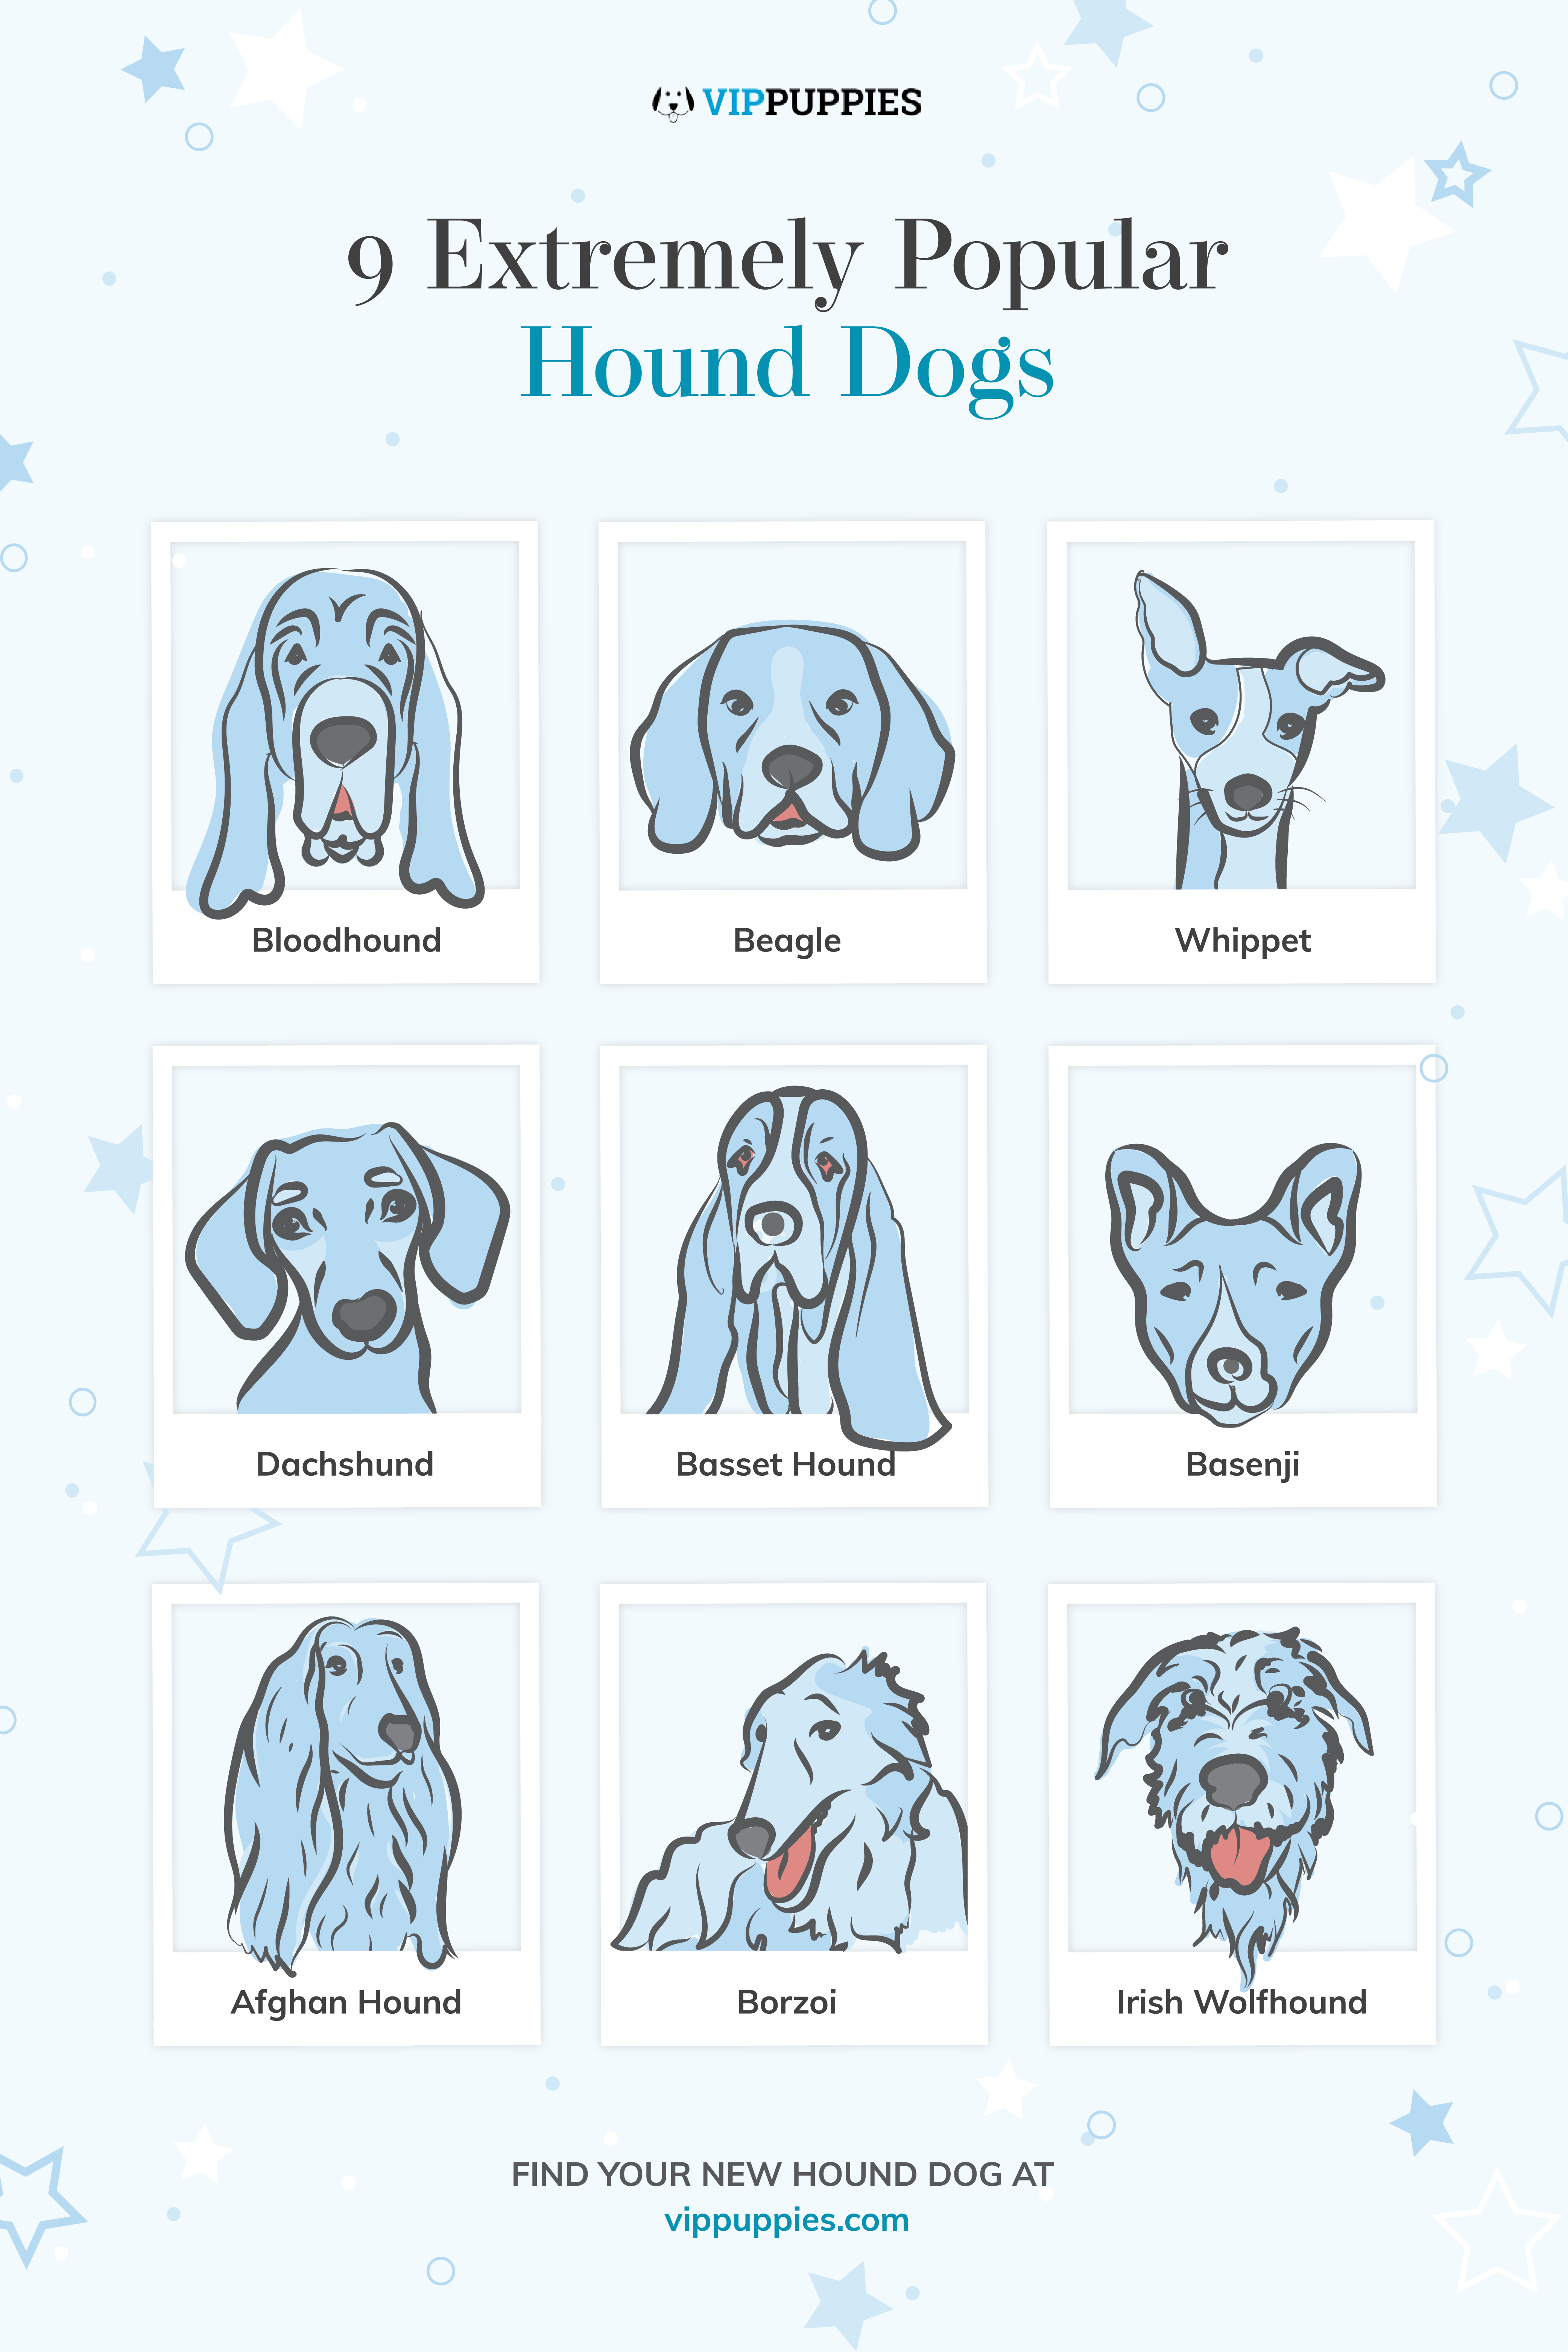 9 Extremely Popular Hound Dogs